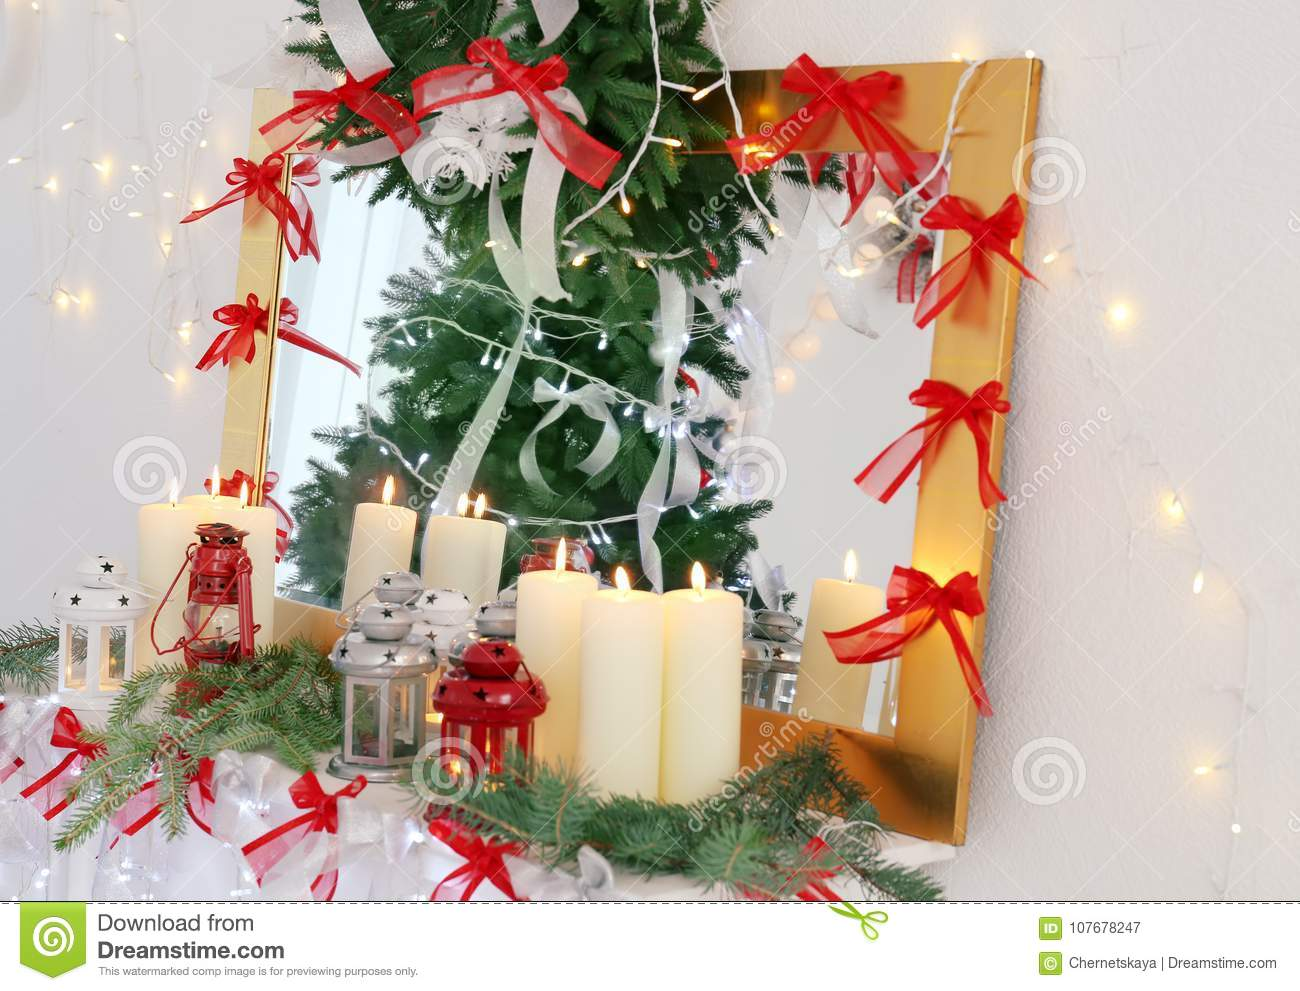 candles and christmas decorations on mantelpiece - Mantelpiece Christmas Decorations